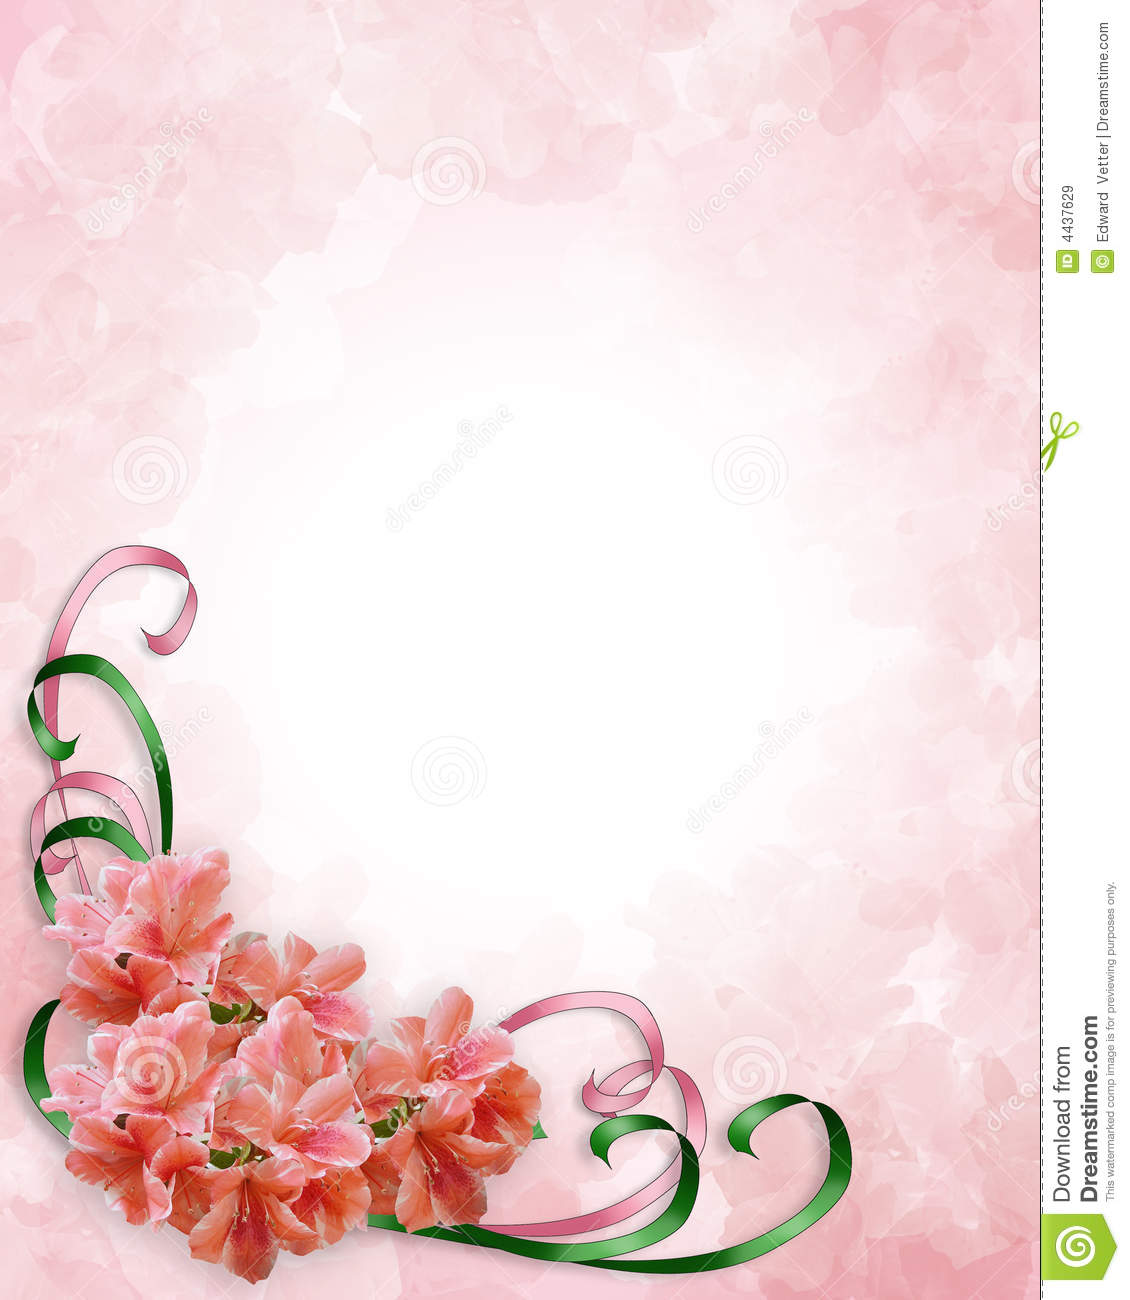 Illustration Composition For Wedding Invitation Mothers Day Or Easter Background Border Or Frame With Pink Azaleas Ribbons And Copy Space